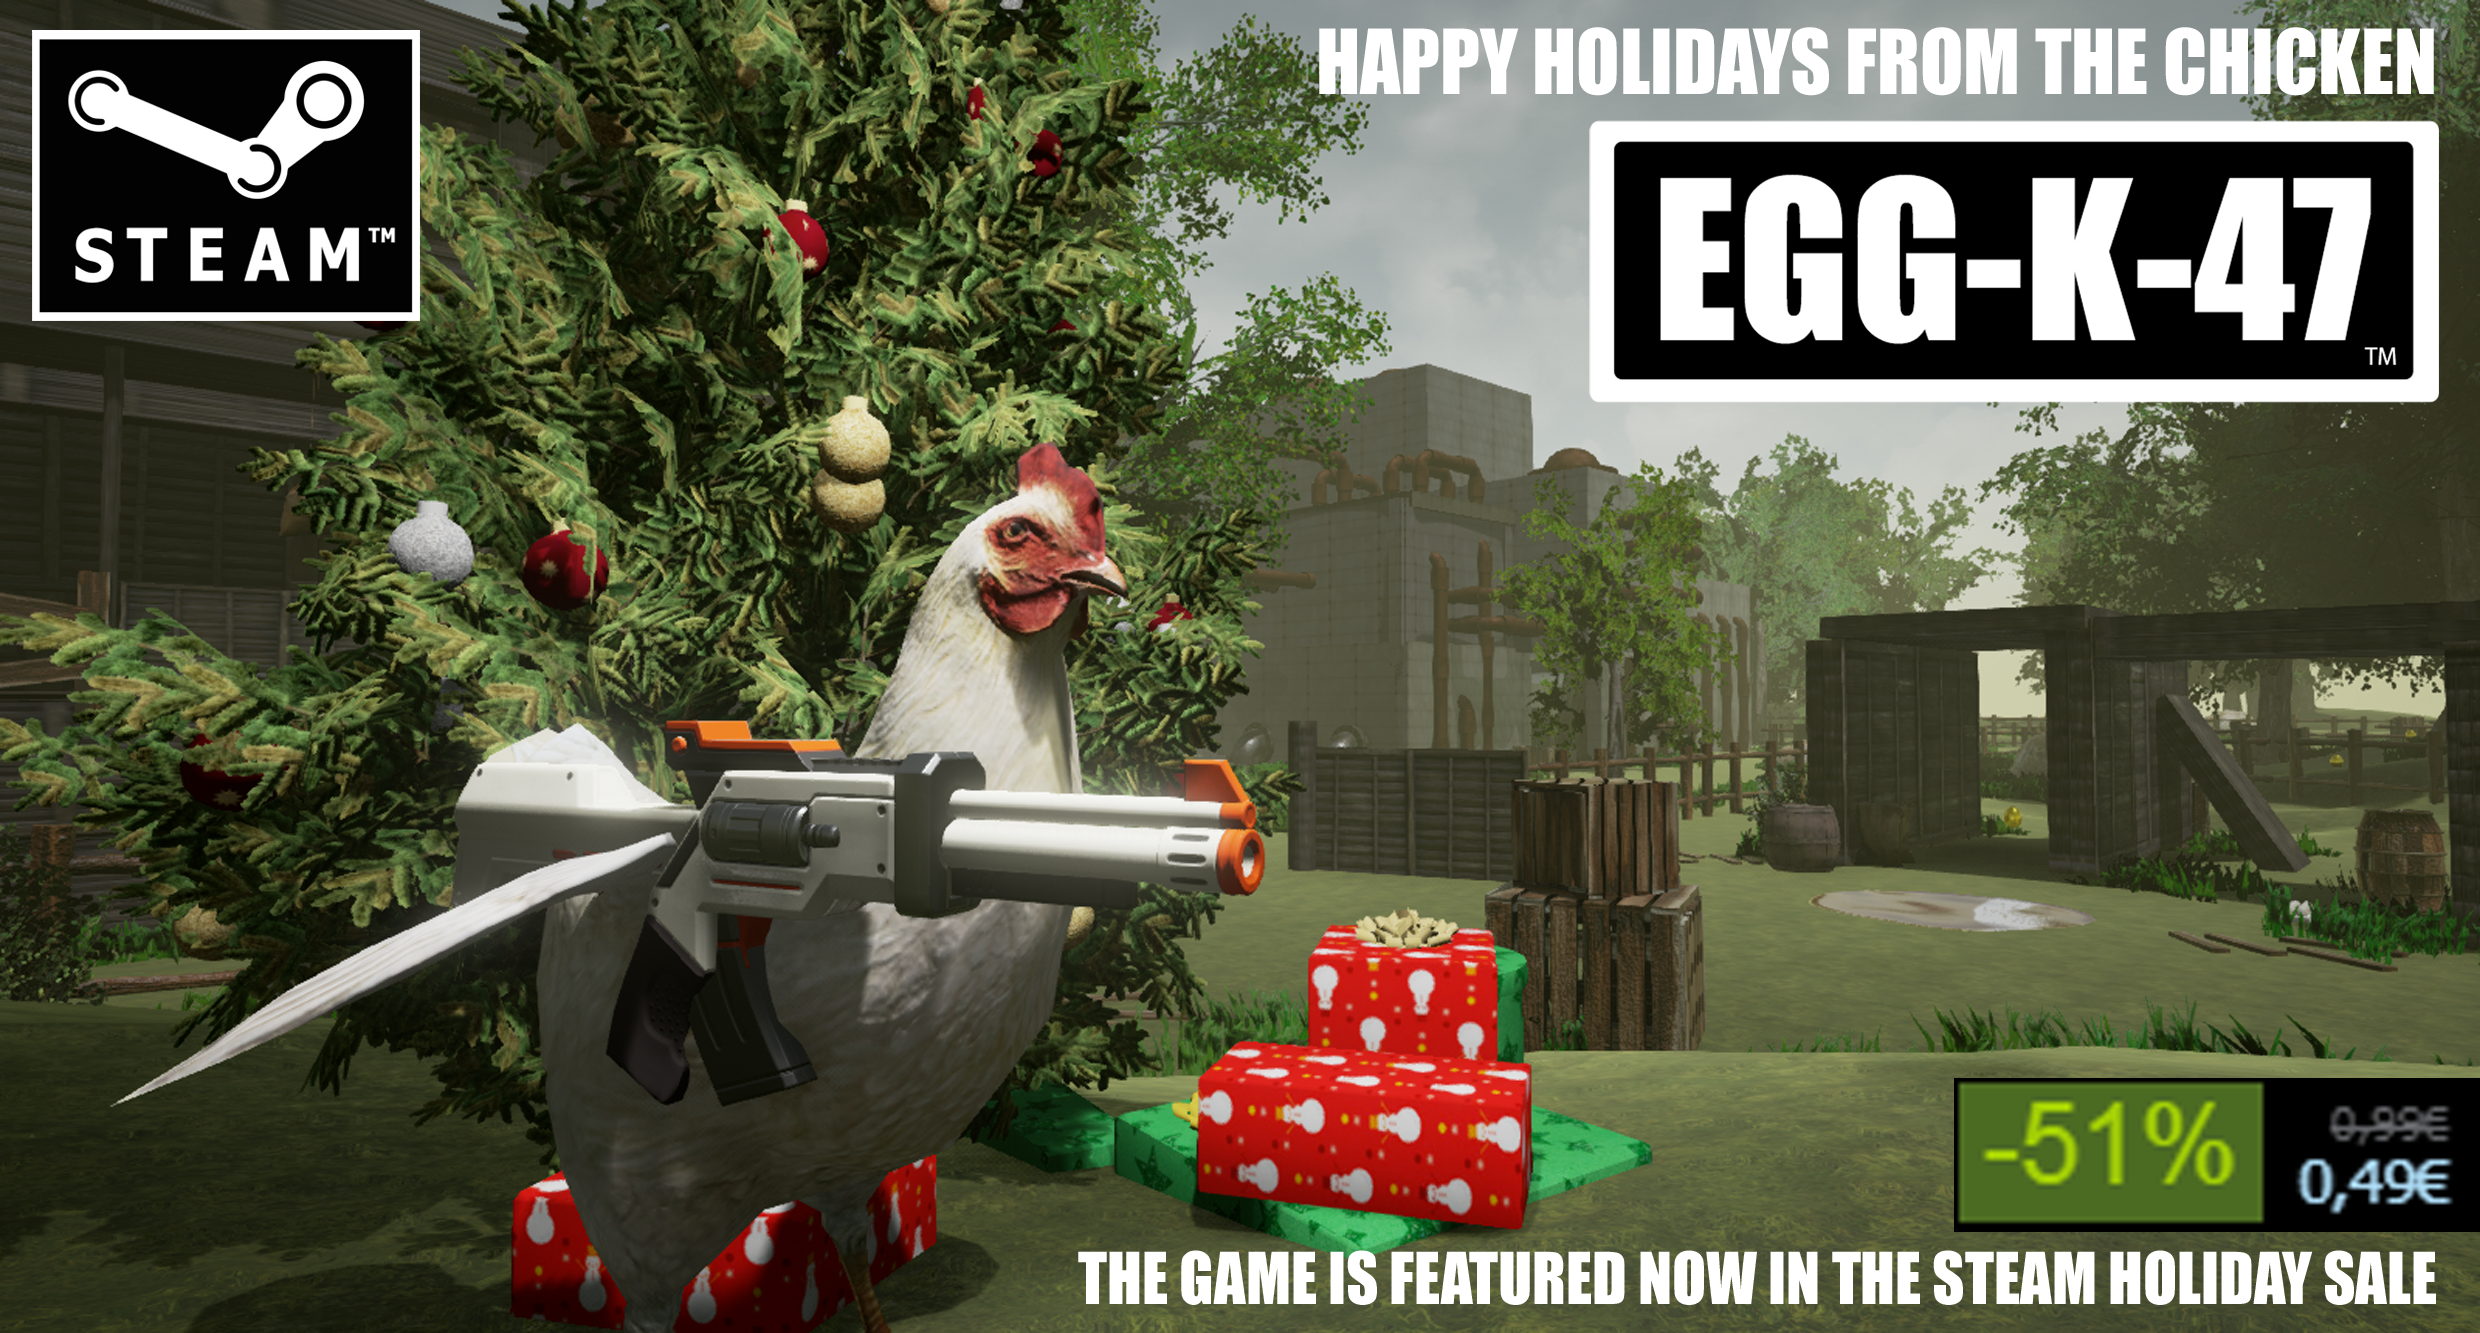 eggk47 steam holiday sale graphic 1